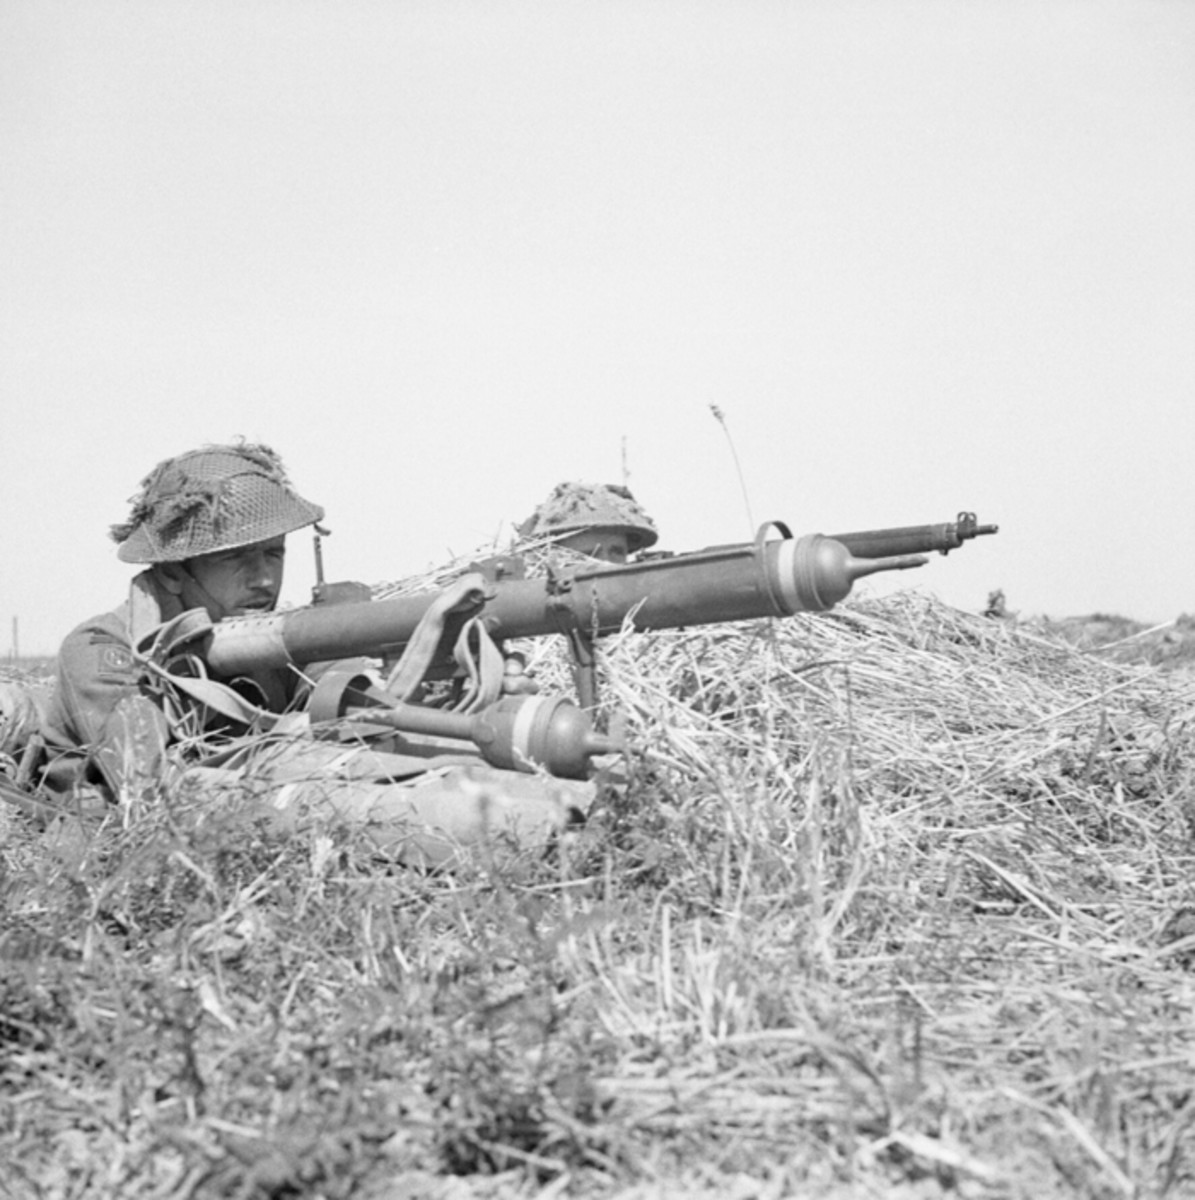 The Projector, Infantry, Anti Tank (PIAT) Mk I was a British man-portable anti-tank weapon developed in 1942. The weapon was a response to the British Army's need for a more effective infantry anti-tank weapon. It entered service in 1943 and continued in use well into the 1950s.